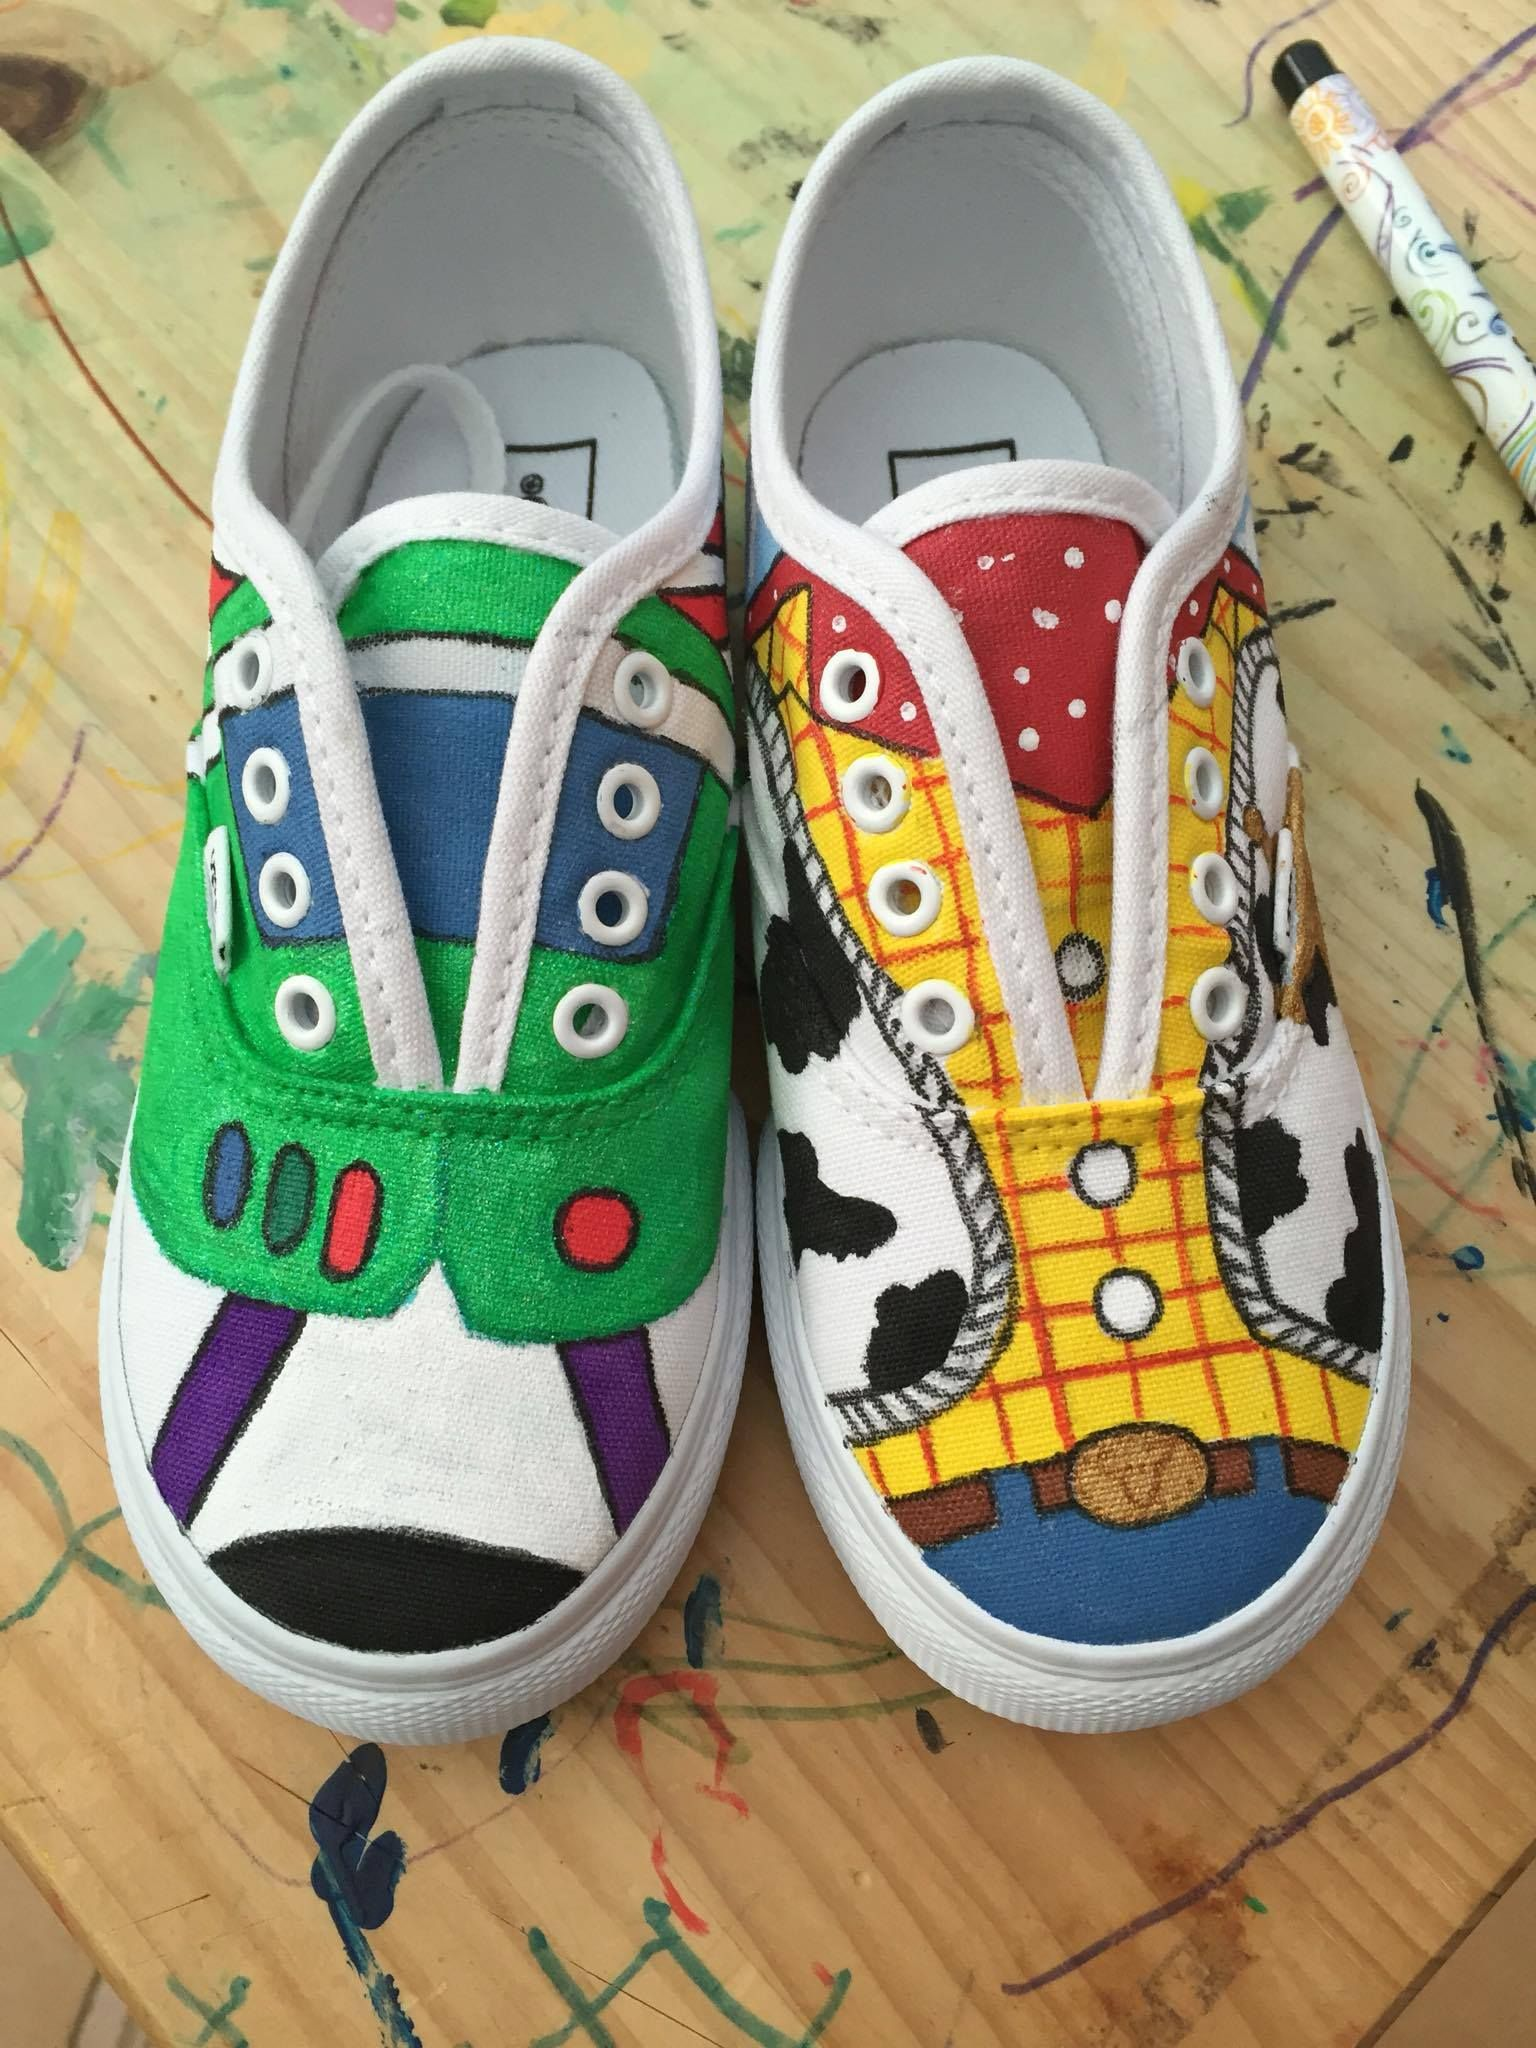 98dfbe6917 toy story woody and buzz painted Vans. toy story woody and buzz painted Vans  Disney Painted Shoes ...